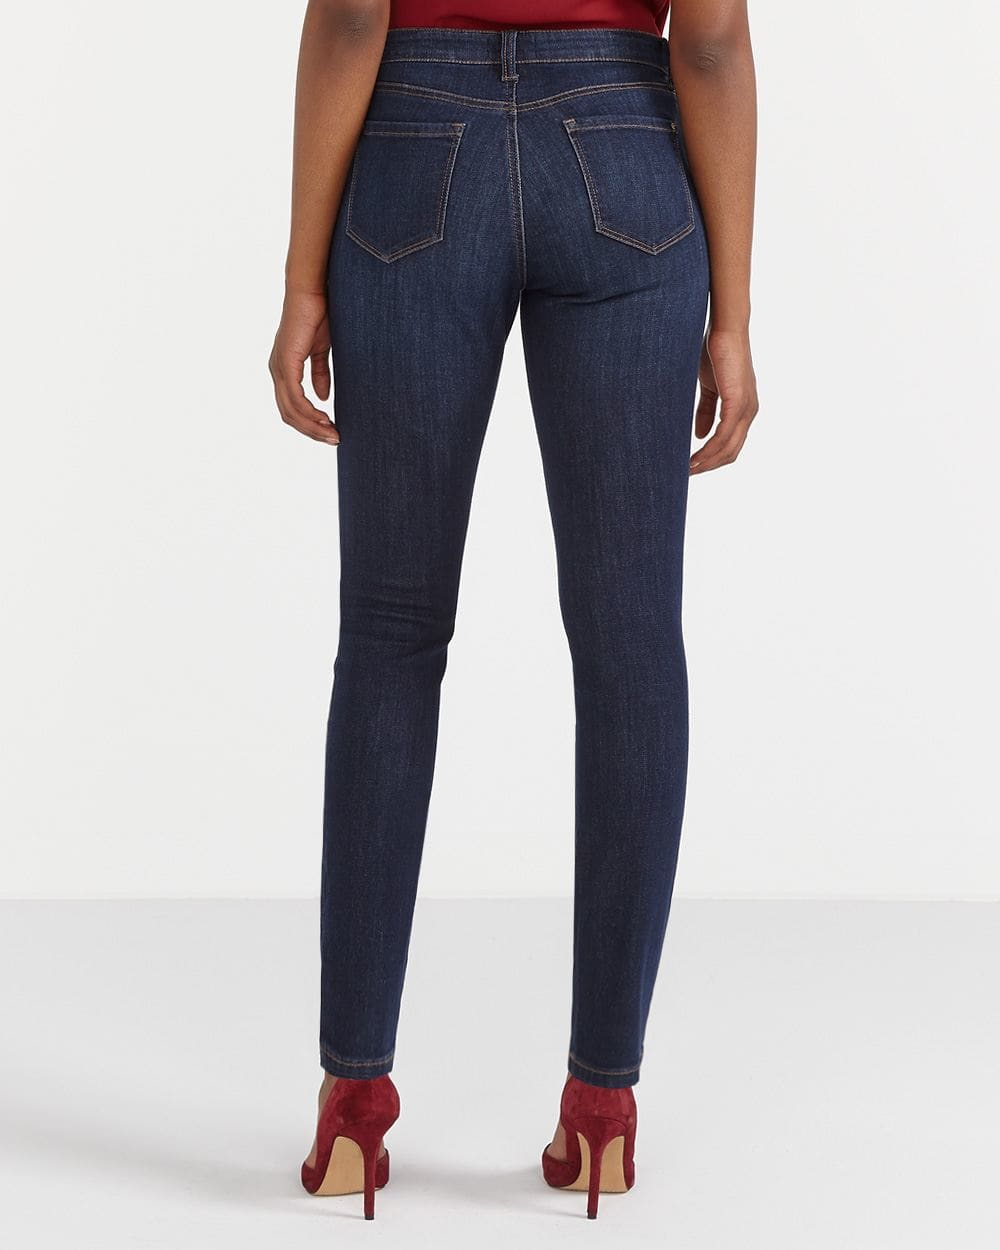 The Insider Skinny Jeans